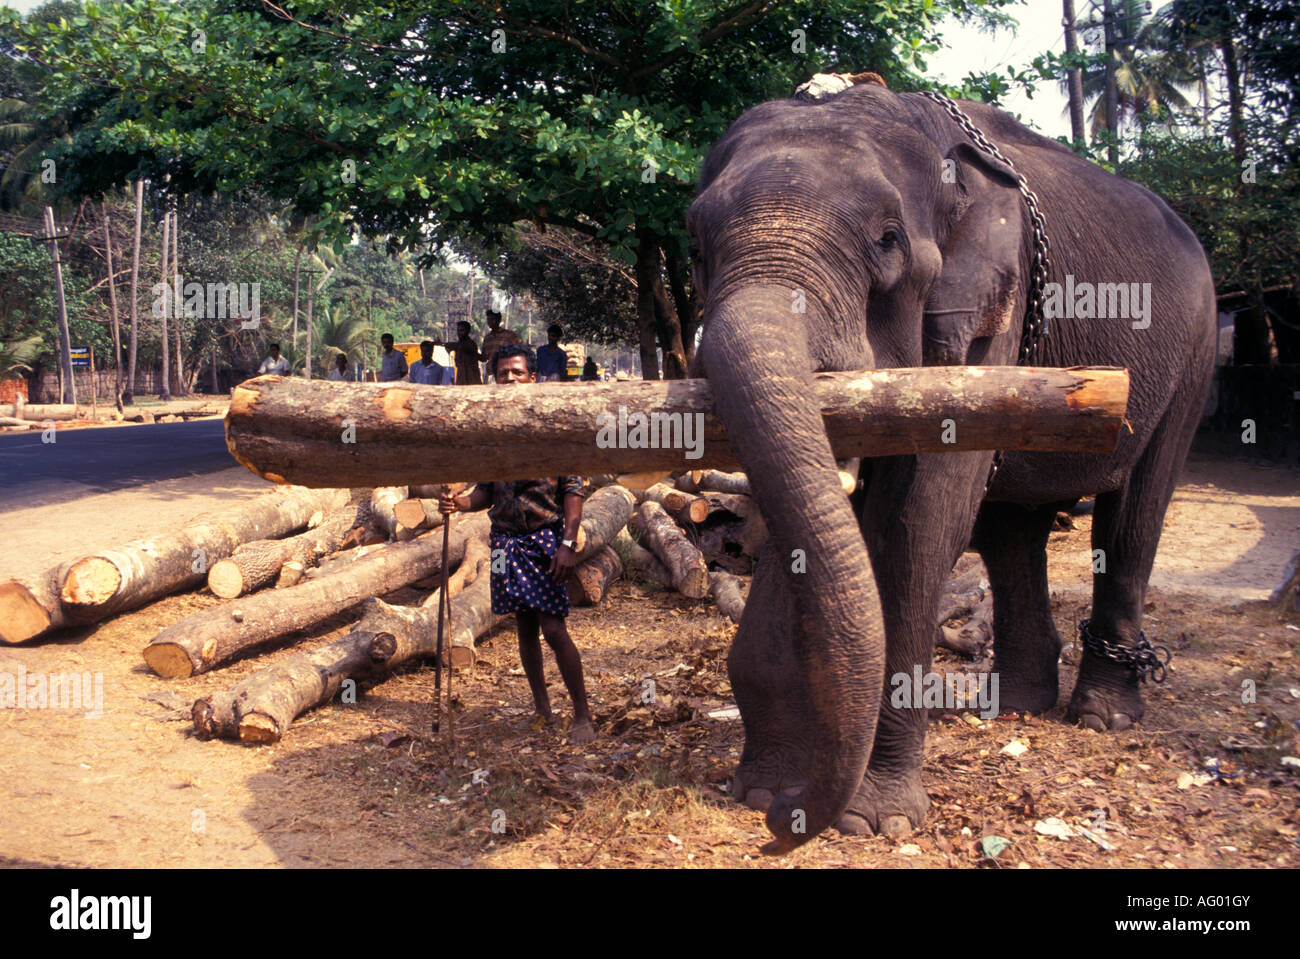 Elephant Working Lifting Timber Kerala Village Life South